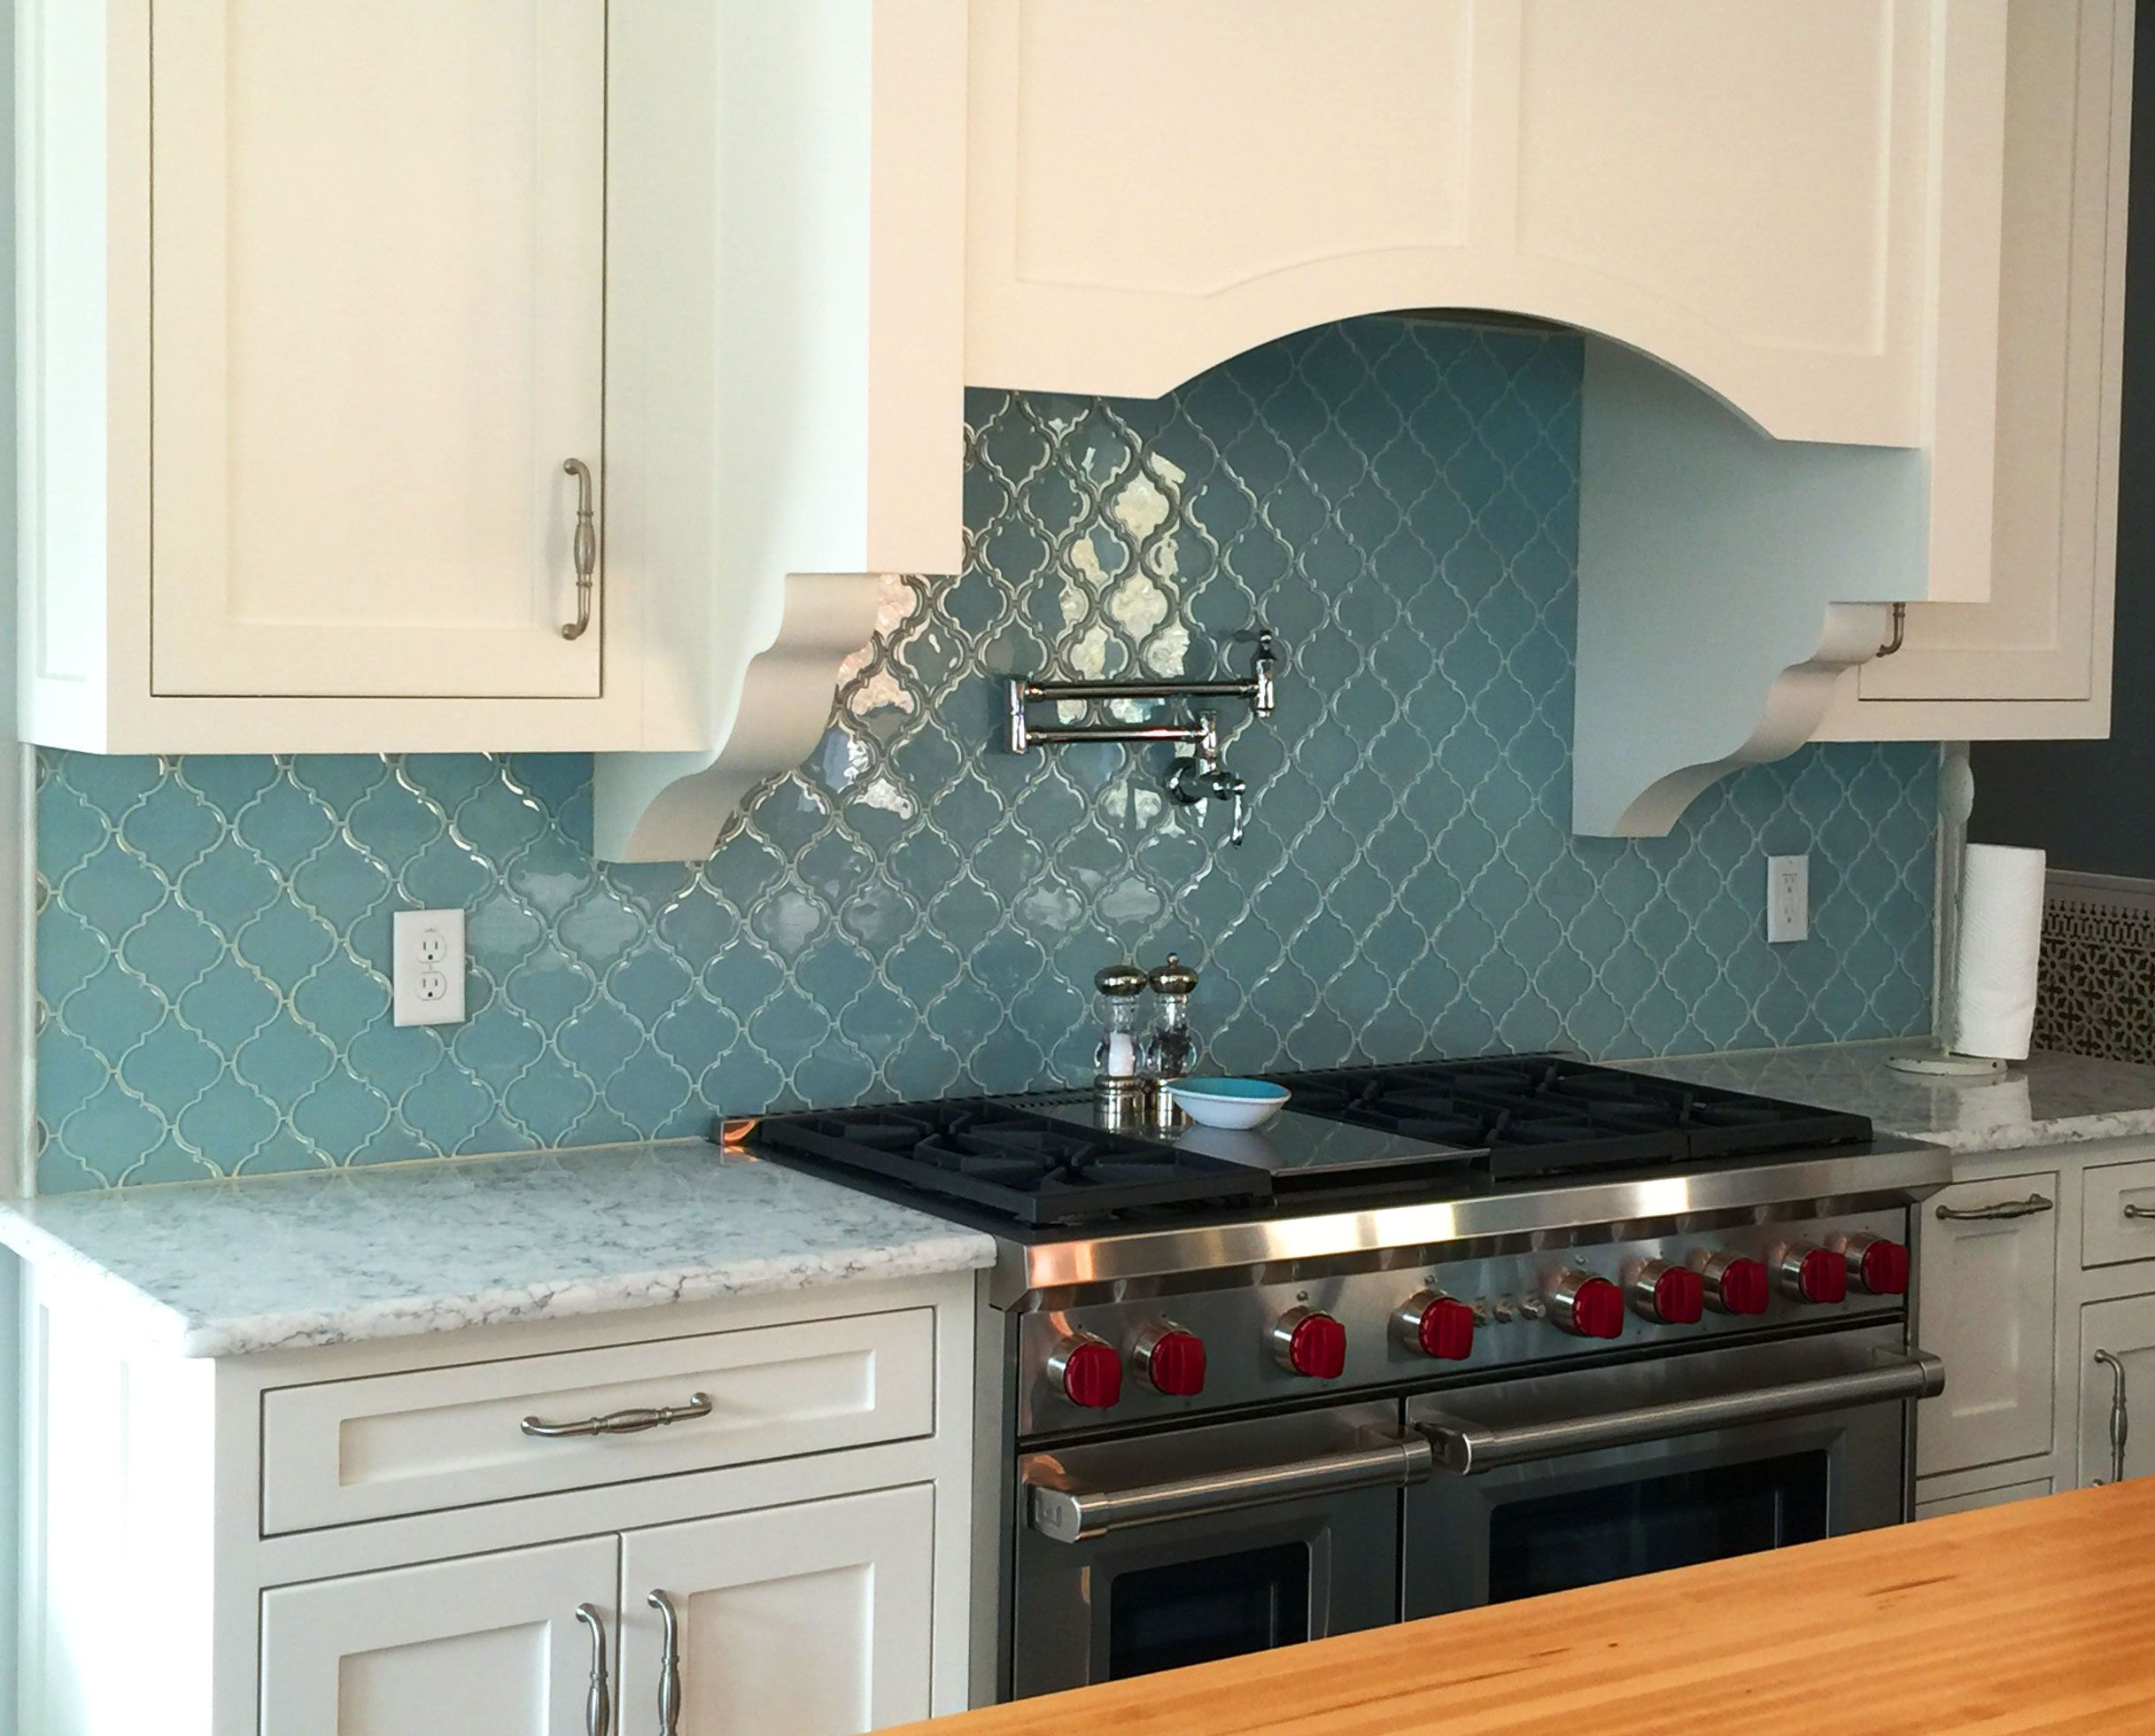 Vapor Arabesque Glass Tile BacksplashGlass Kitchen